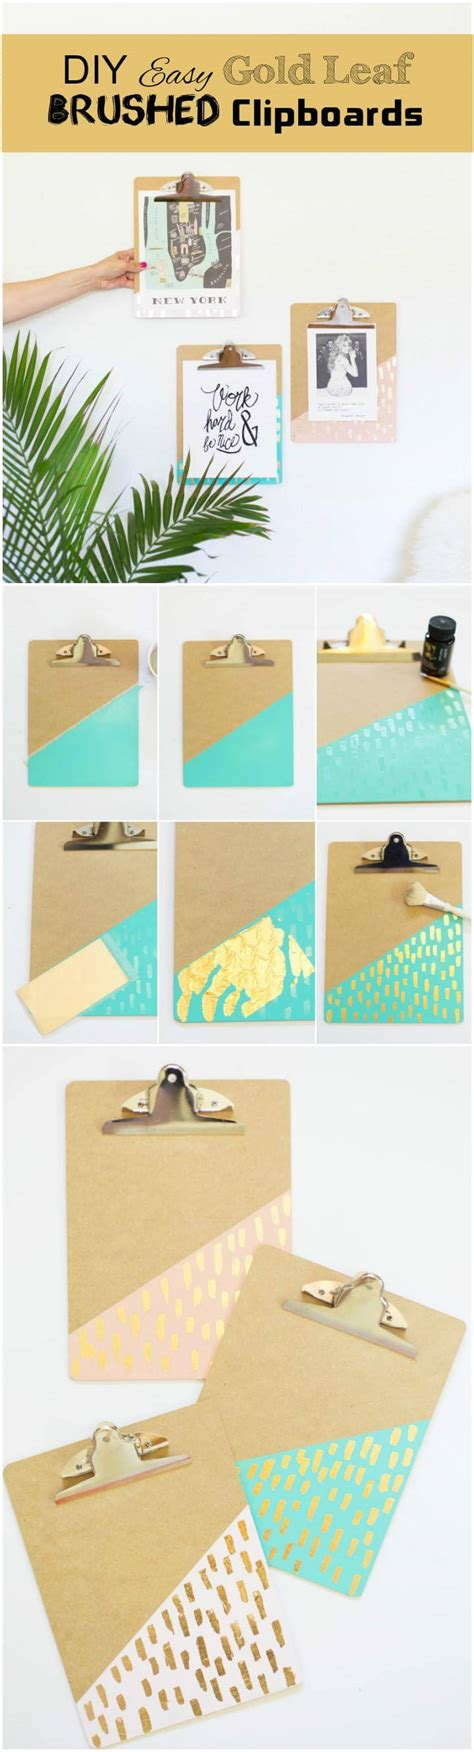 40 easy best diy back to school projects page 3 of 8 diy crafts